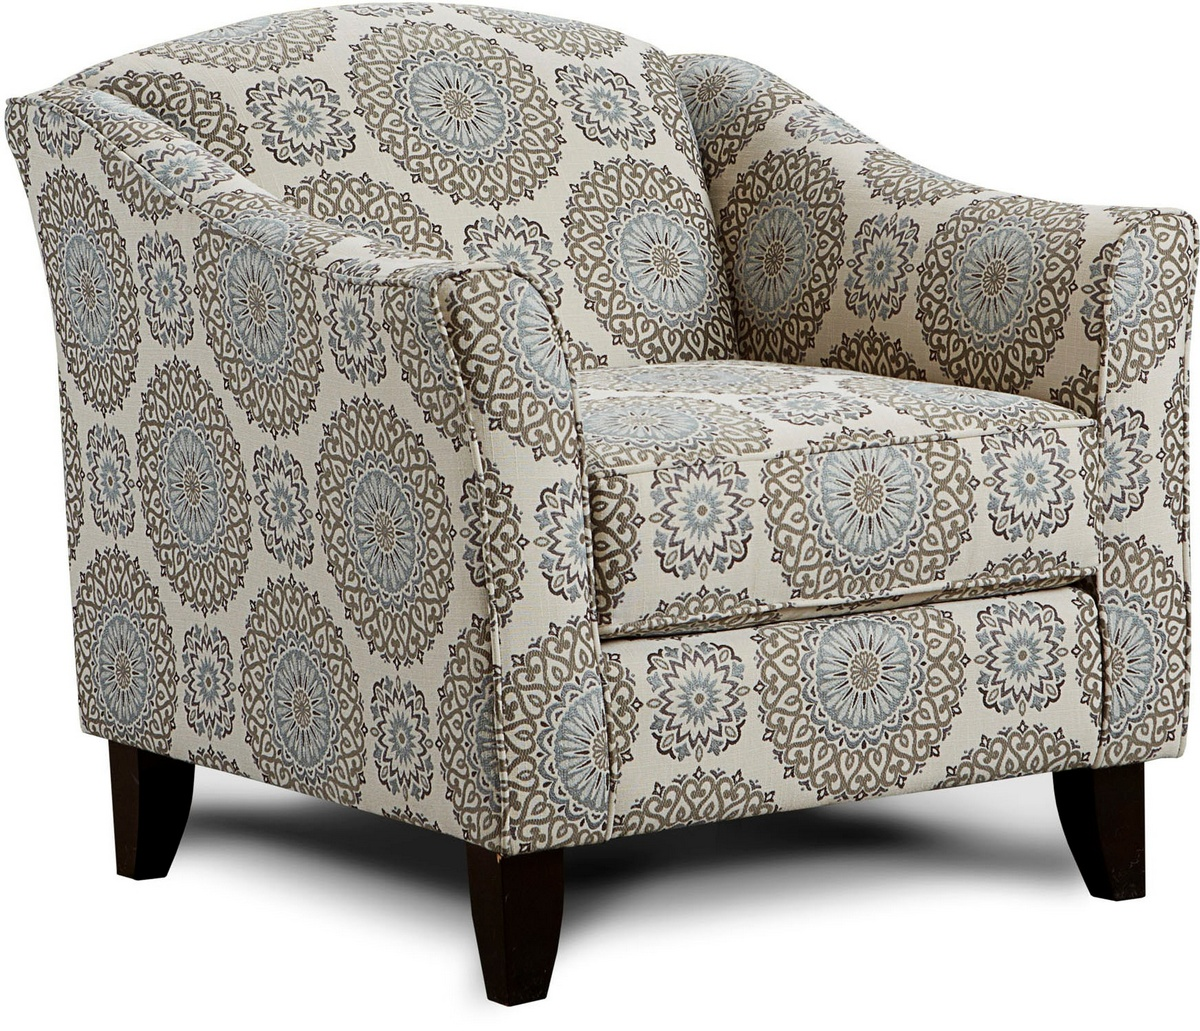 Chelsea Home Daisy Accent Chair Revolution Twiight Revolution Twilight